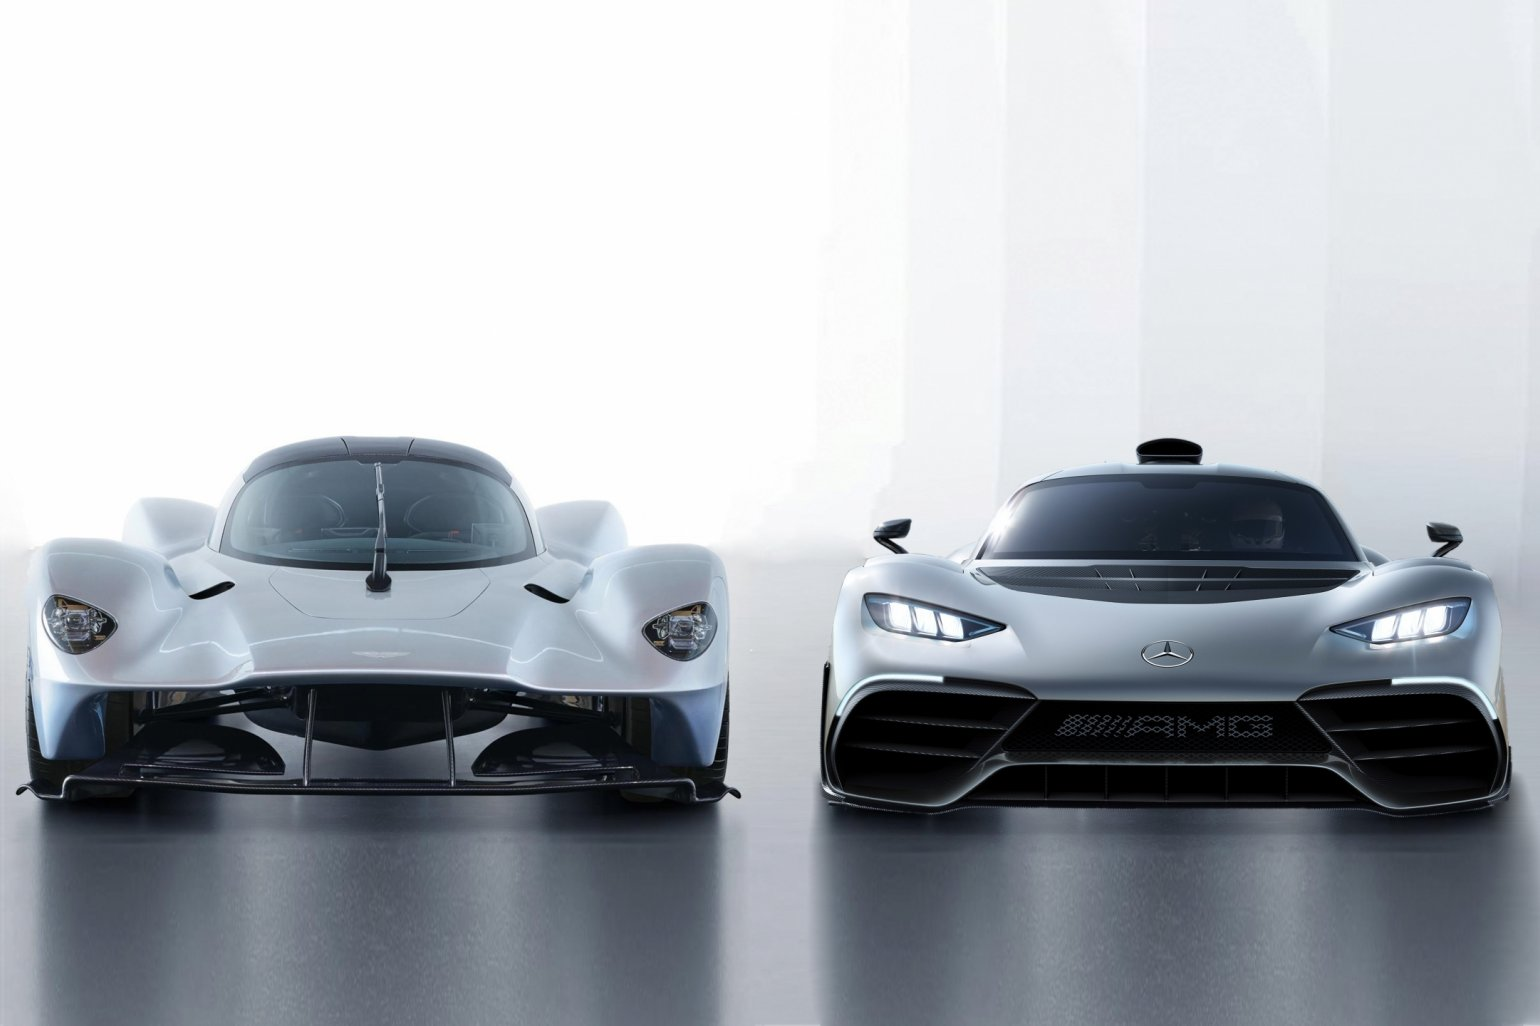 mercedes amg project one vs aston martin valkyrie - auto republika